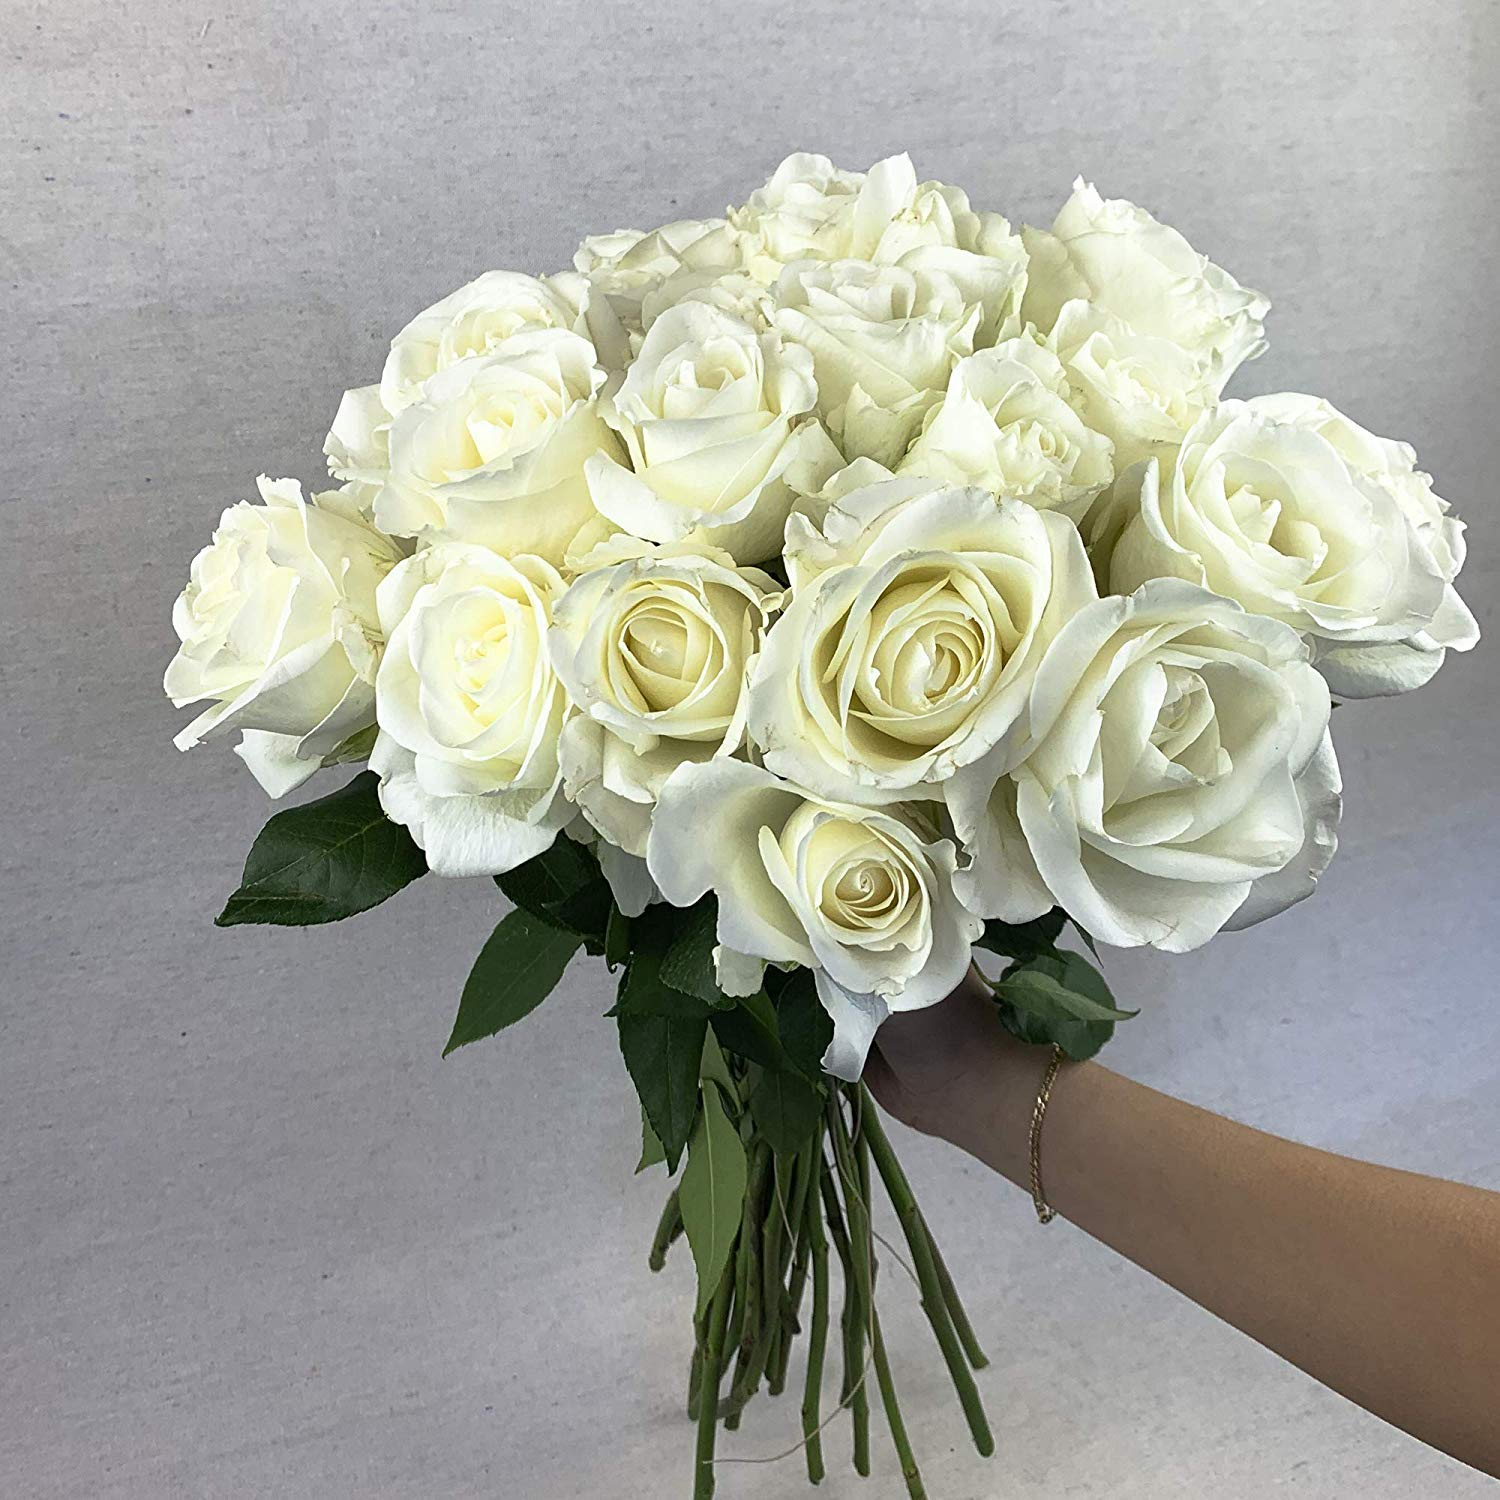 Green Choice Flowers - 24 (2 Dozen) Premium White Fresh Roses with Long Stem 20'' inch - Farm Fresh Flowers Beautiful White Rose Flower Cut Per Order Direct from Farm Free Fast Delivery Long Lasting